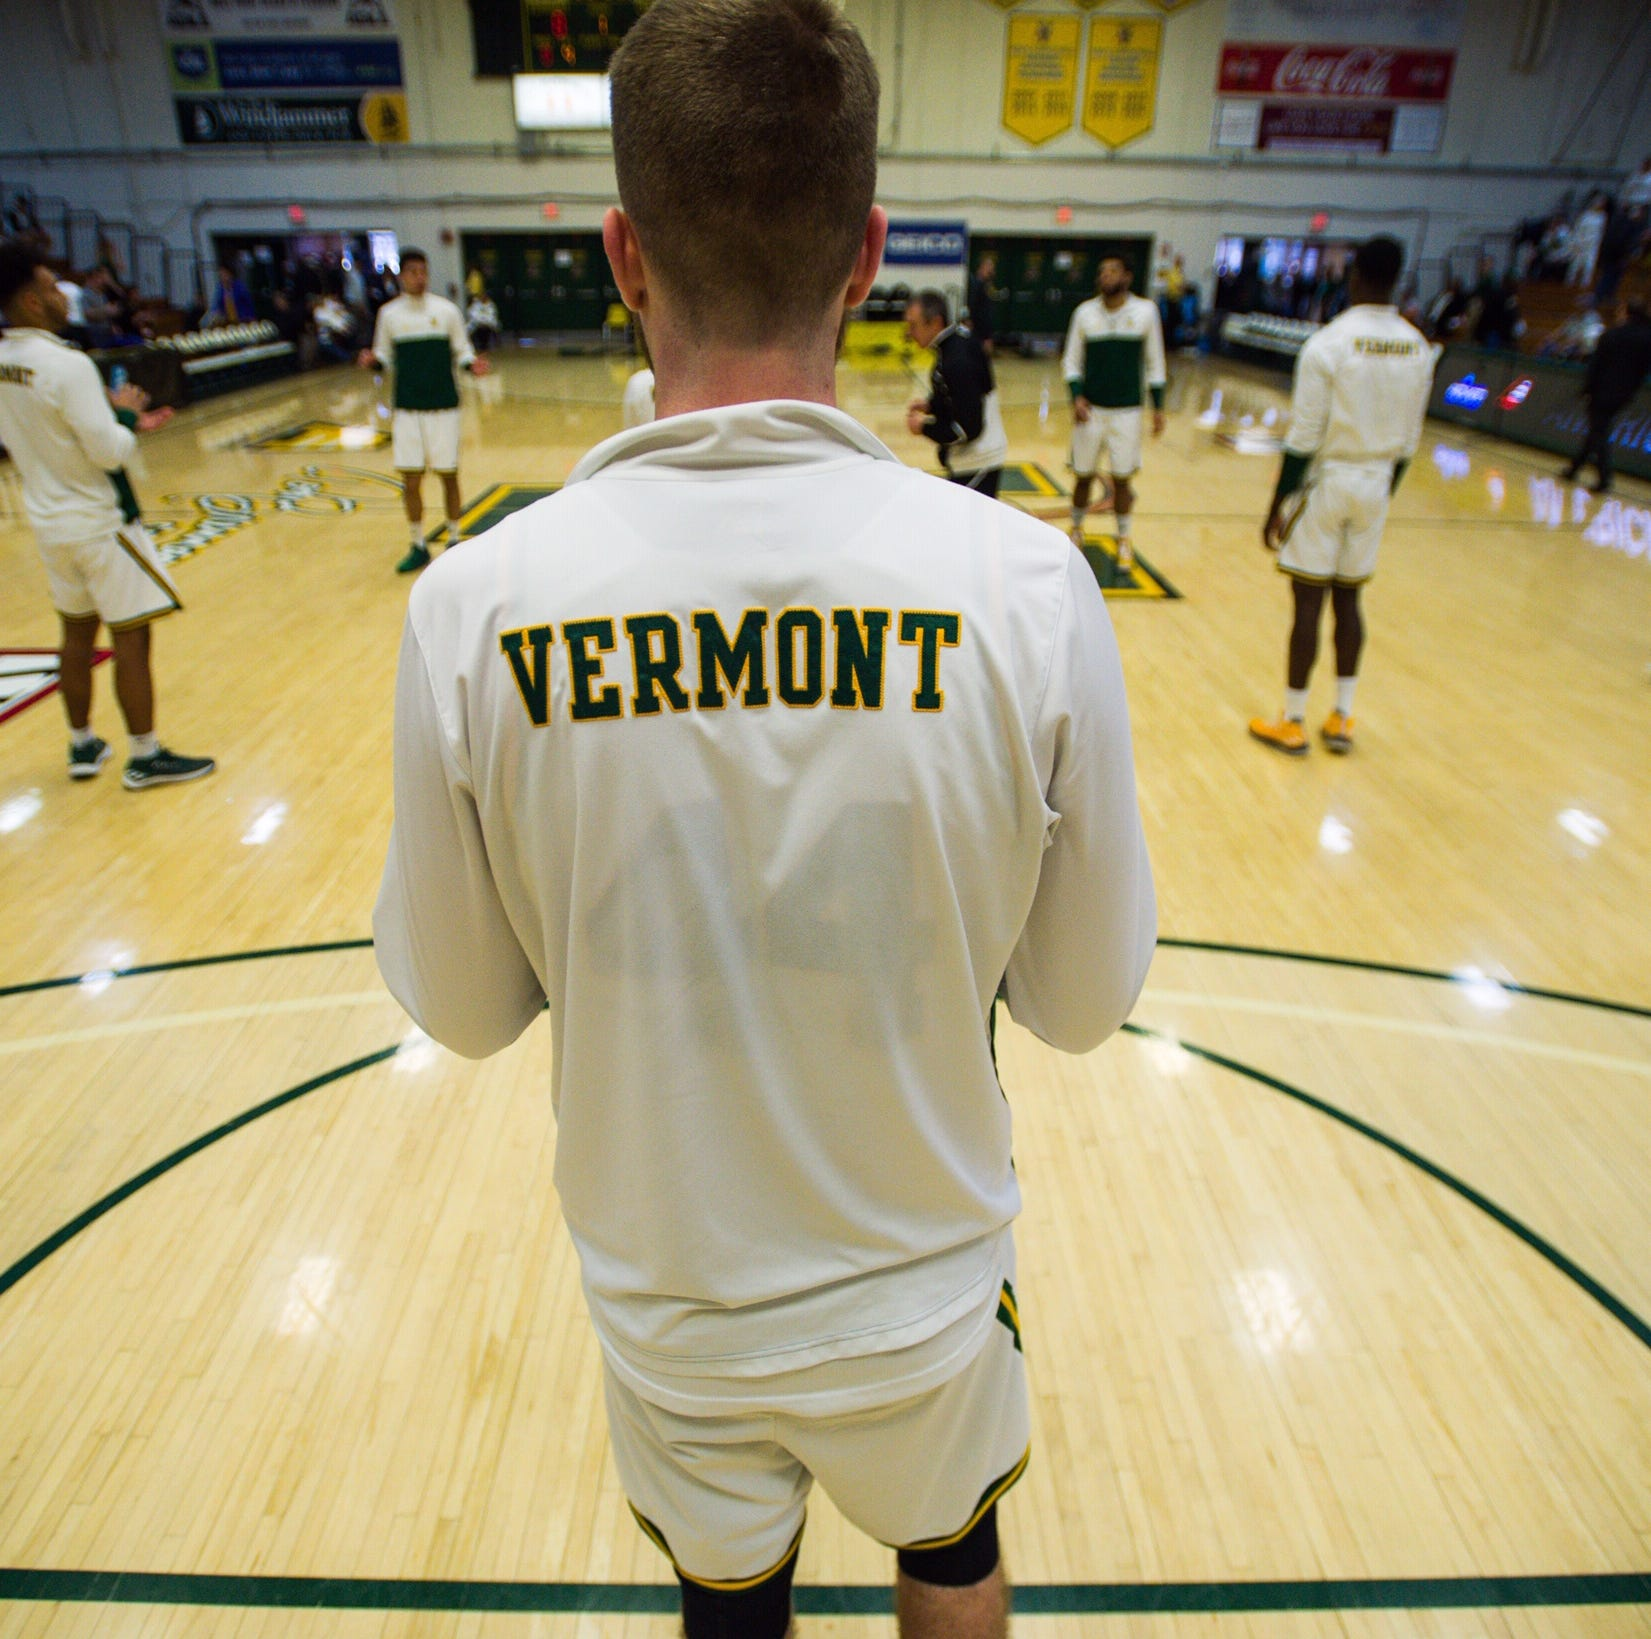 The University of Vermont men's basketball team warms up before the 2019 America East Championship game against UMBC at Patrick Gym on Saturday, March 16.